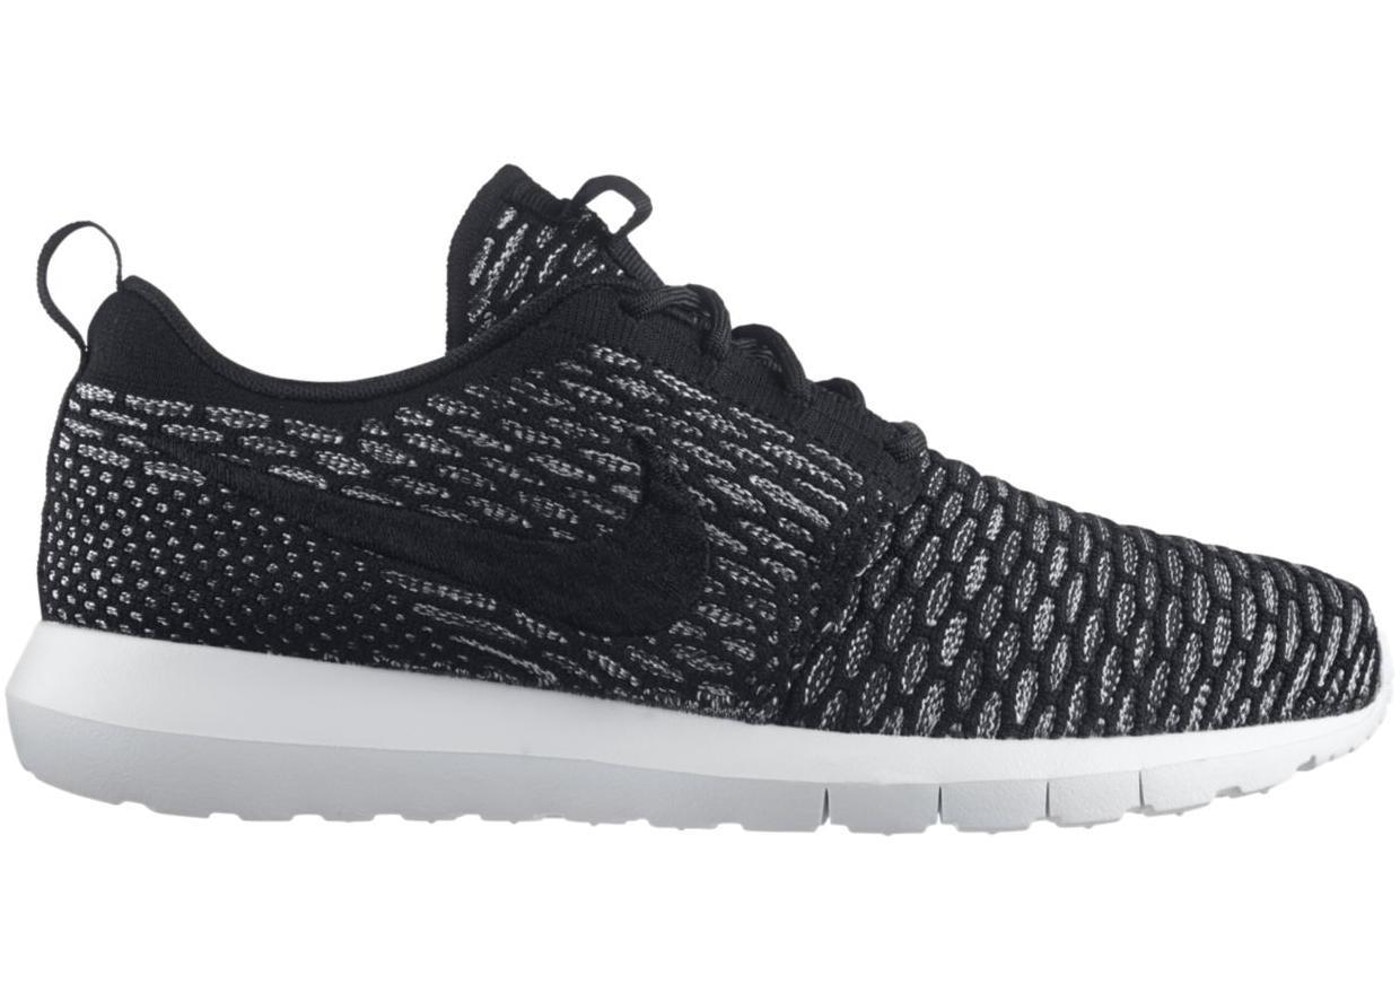 big sale 0fa32 abf66 Nike Roshe Run Flyknit Black Sequoia - 677243-003